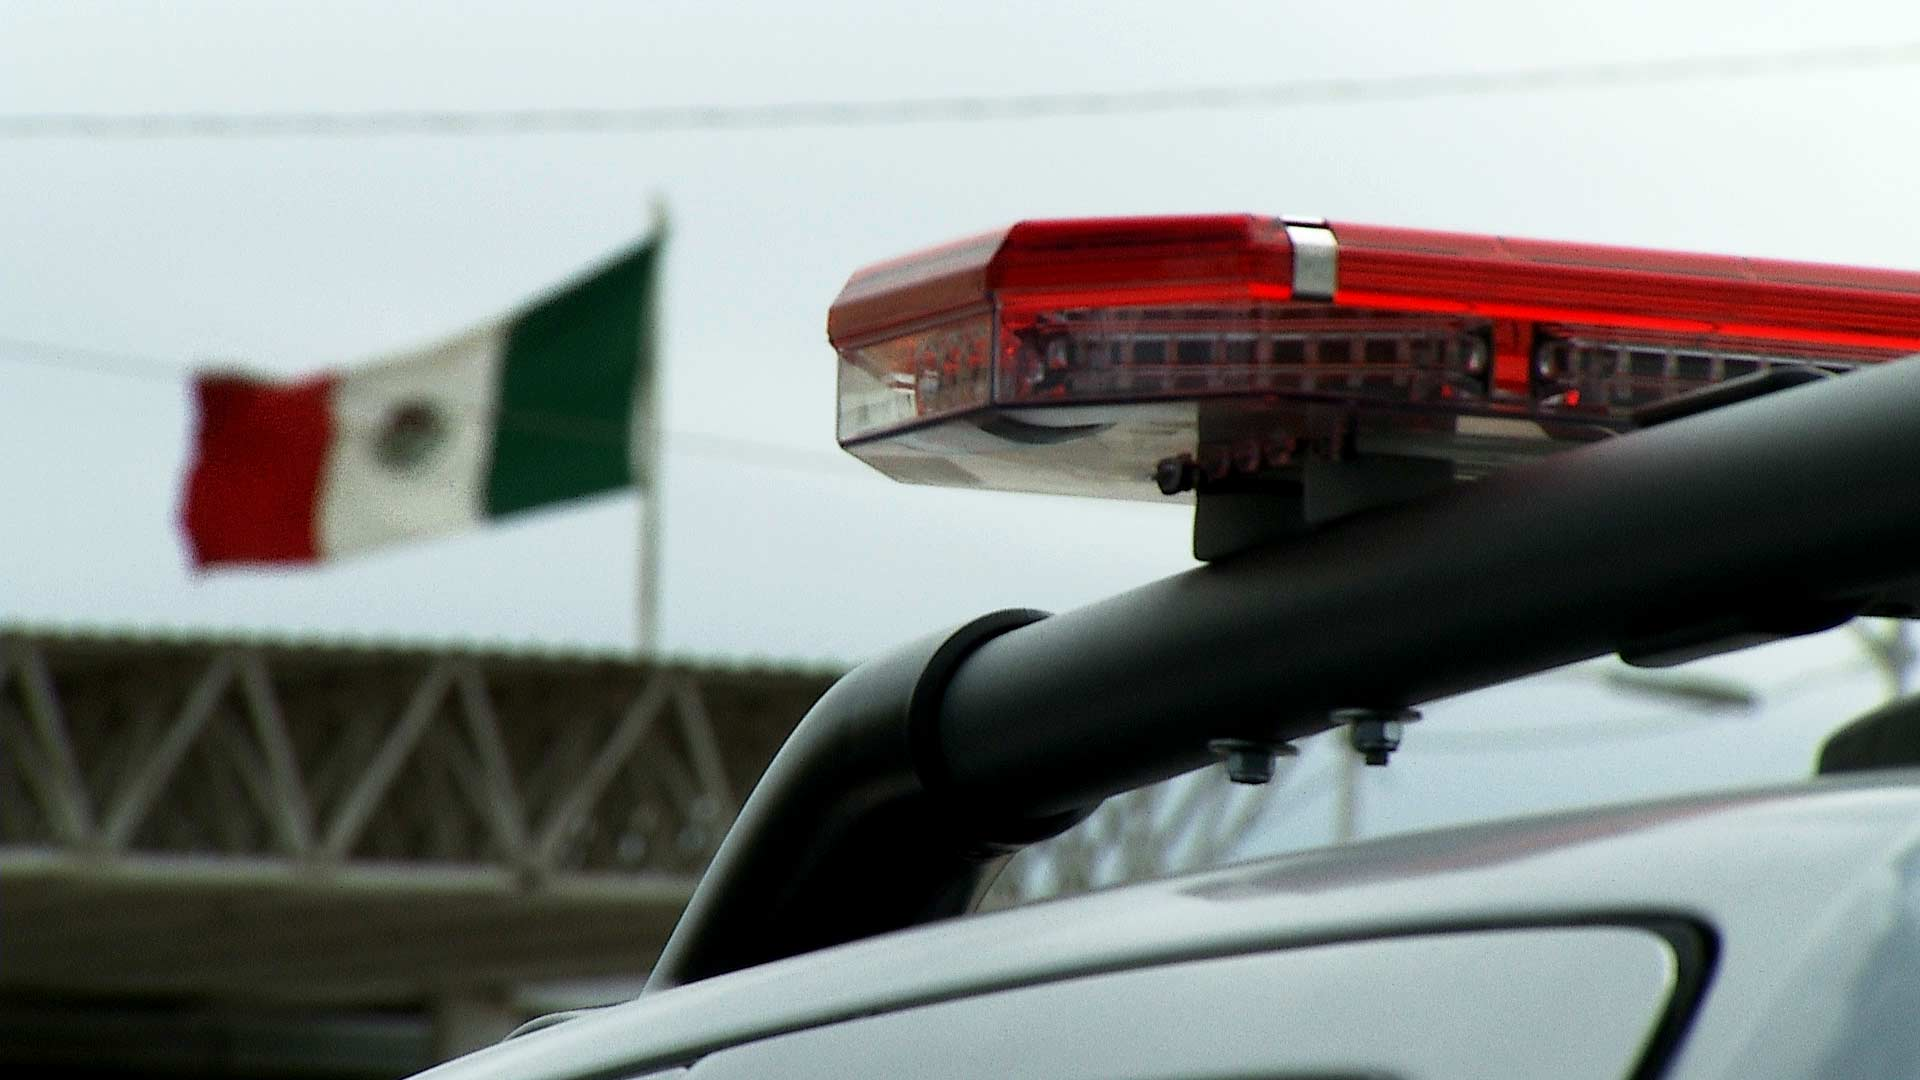 The lights atop a vehicle belonging to Agua Prieta, Mexico police. A Mexican flag is visible in the background. October 2019.